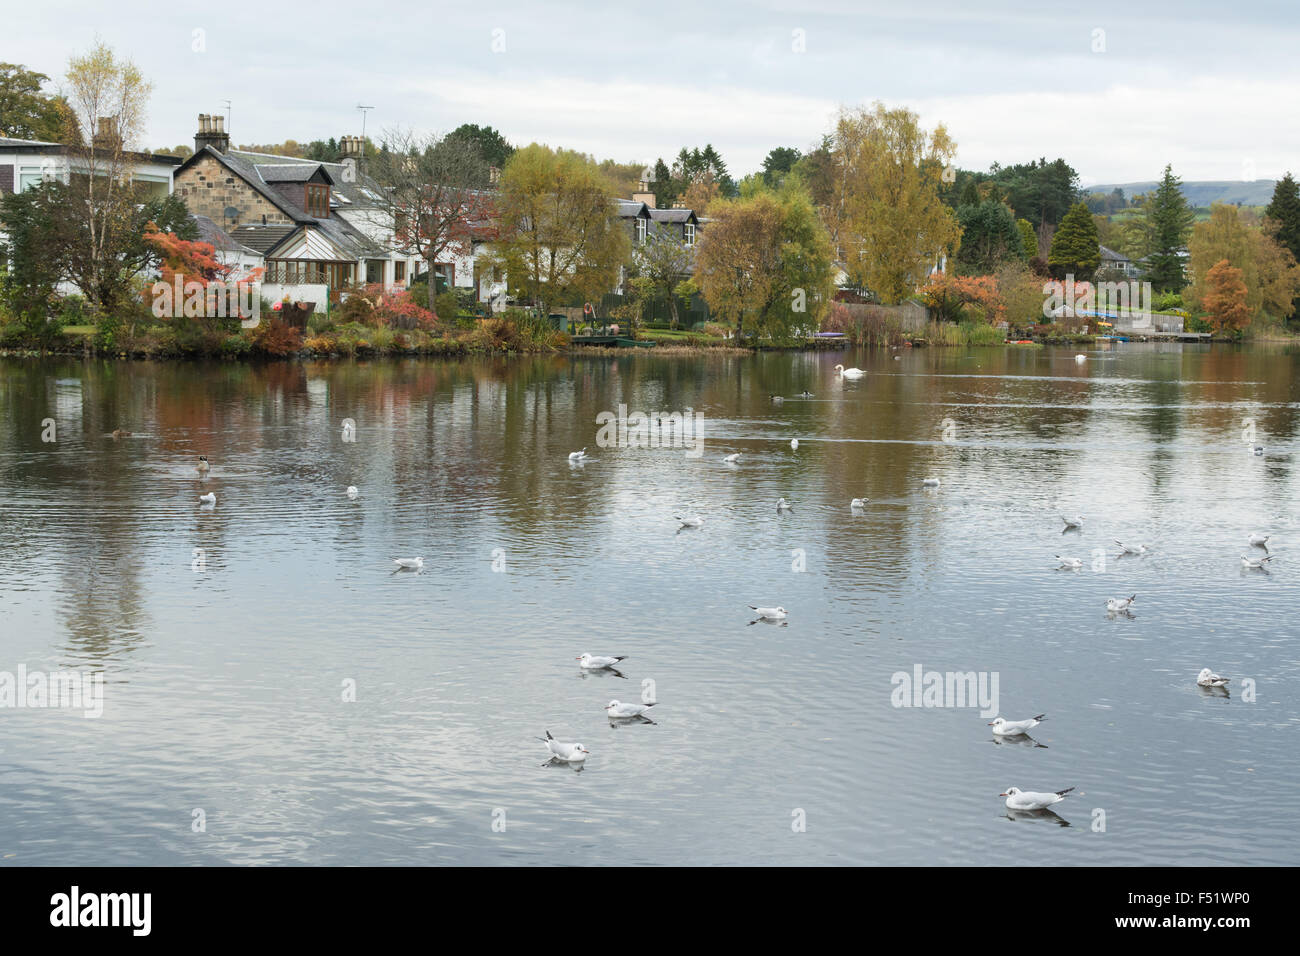 Tannoch Loch, Milngavie in autumn.  Milngavie is an affluent suburb of Glasgow, approx 6 miles nw of the city centre, - Stock Image